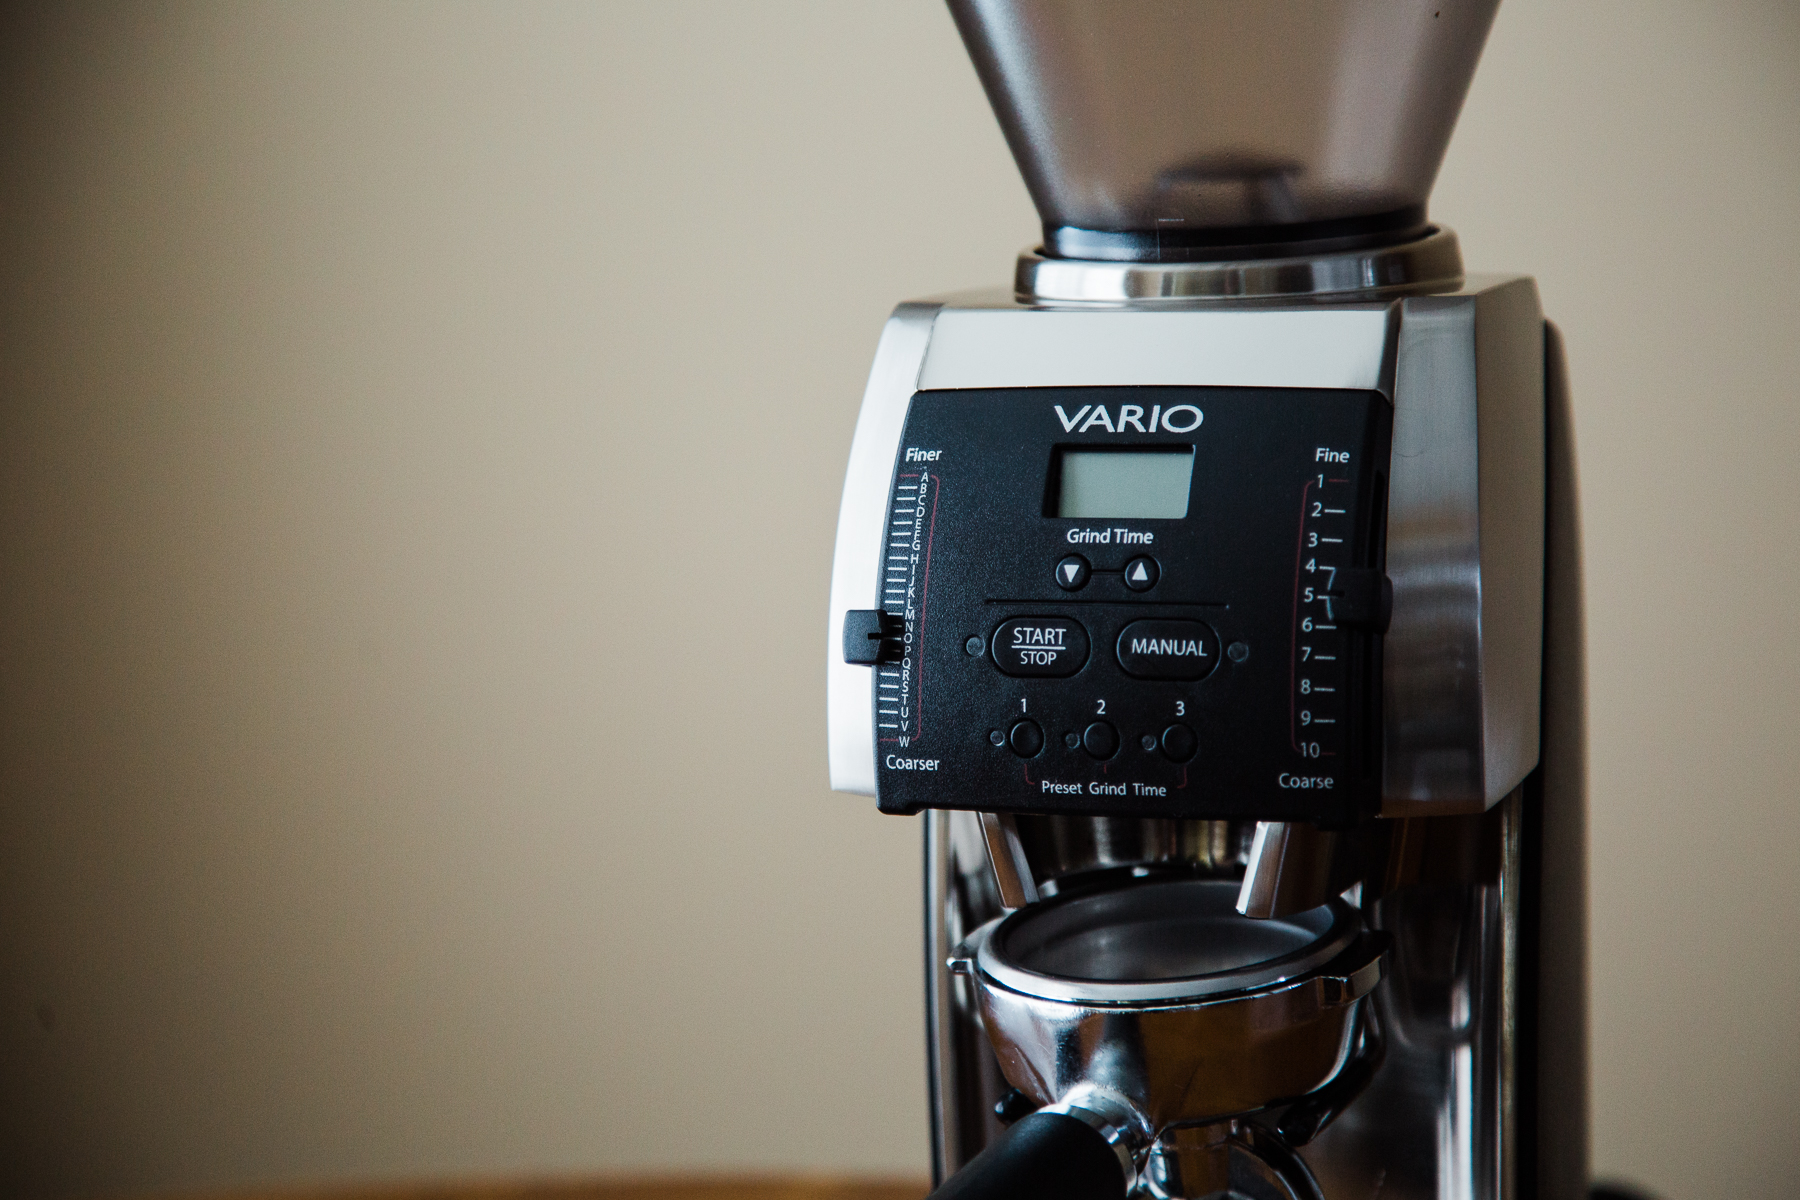 A closeup of the Baratza Vario, focused in on the digital control panel.